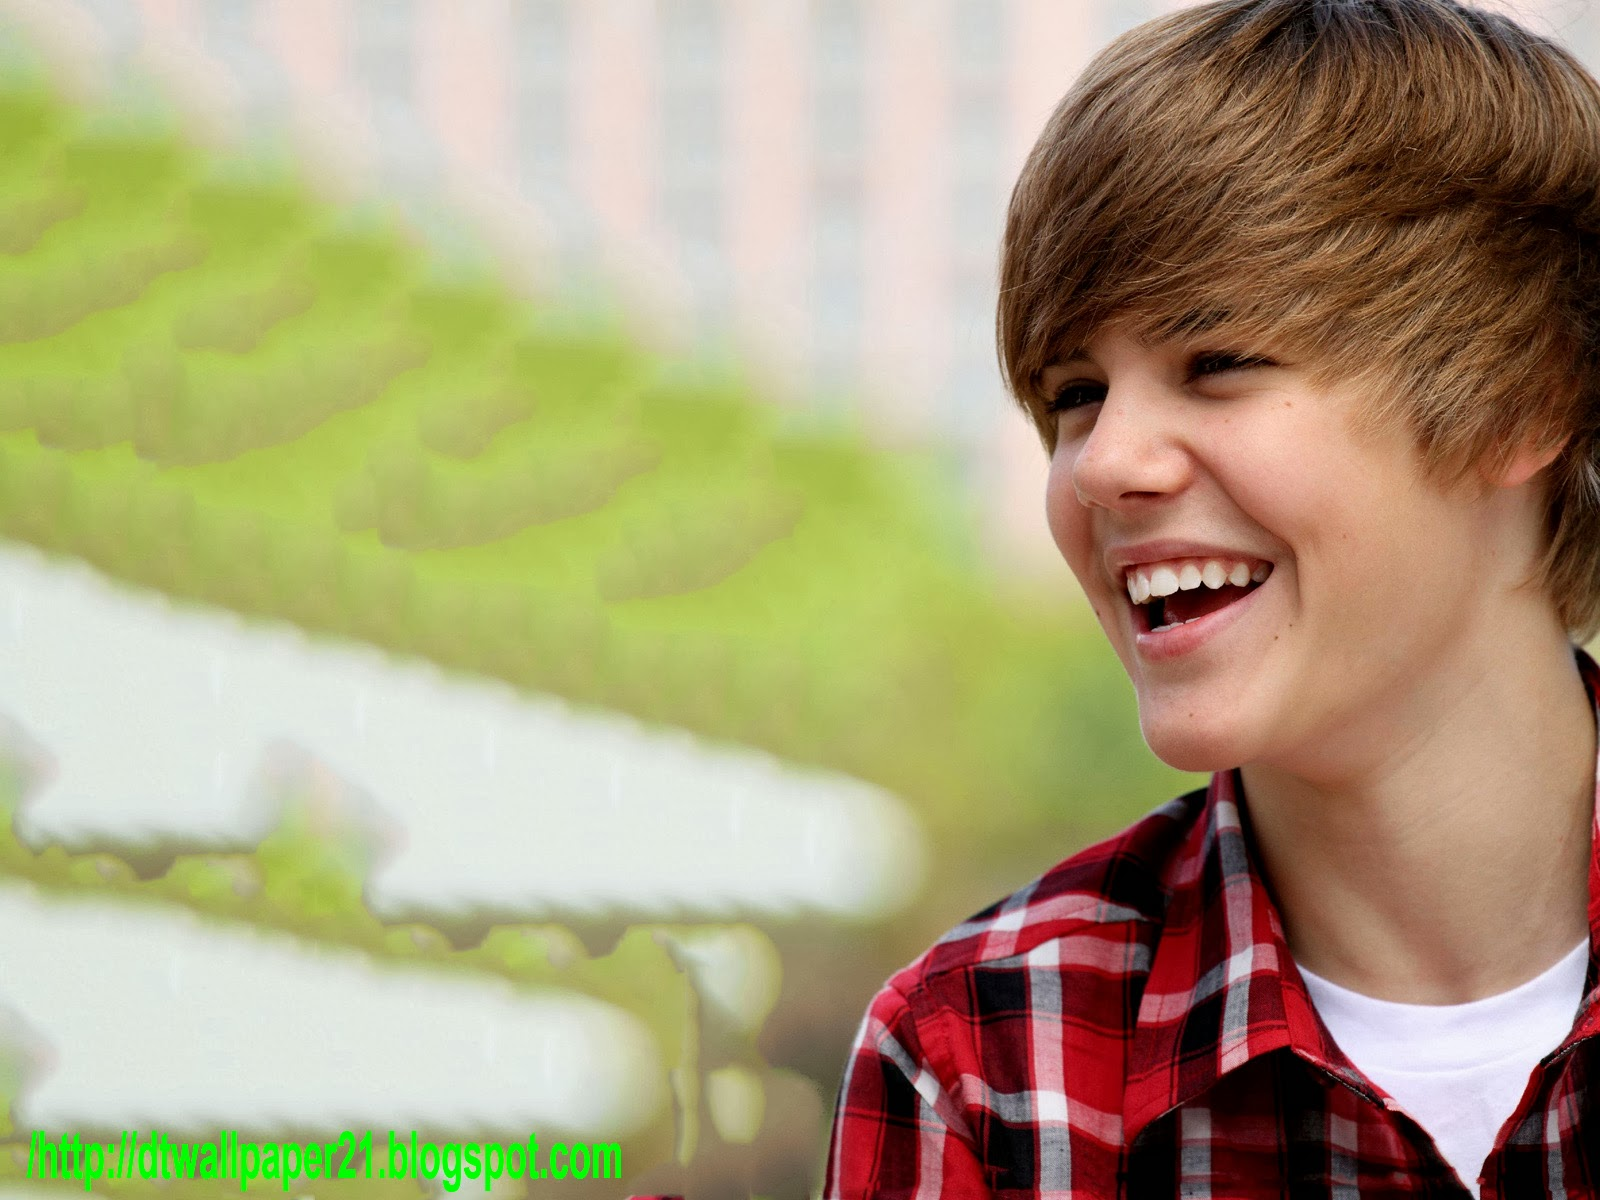 Justin Bieber Lifestyle Photography | Celebrity Lifestyles